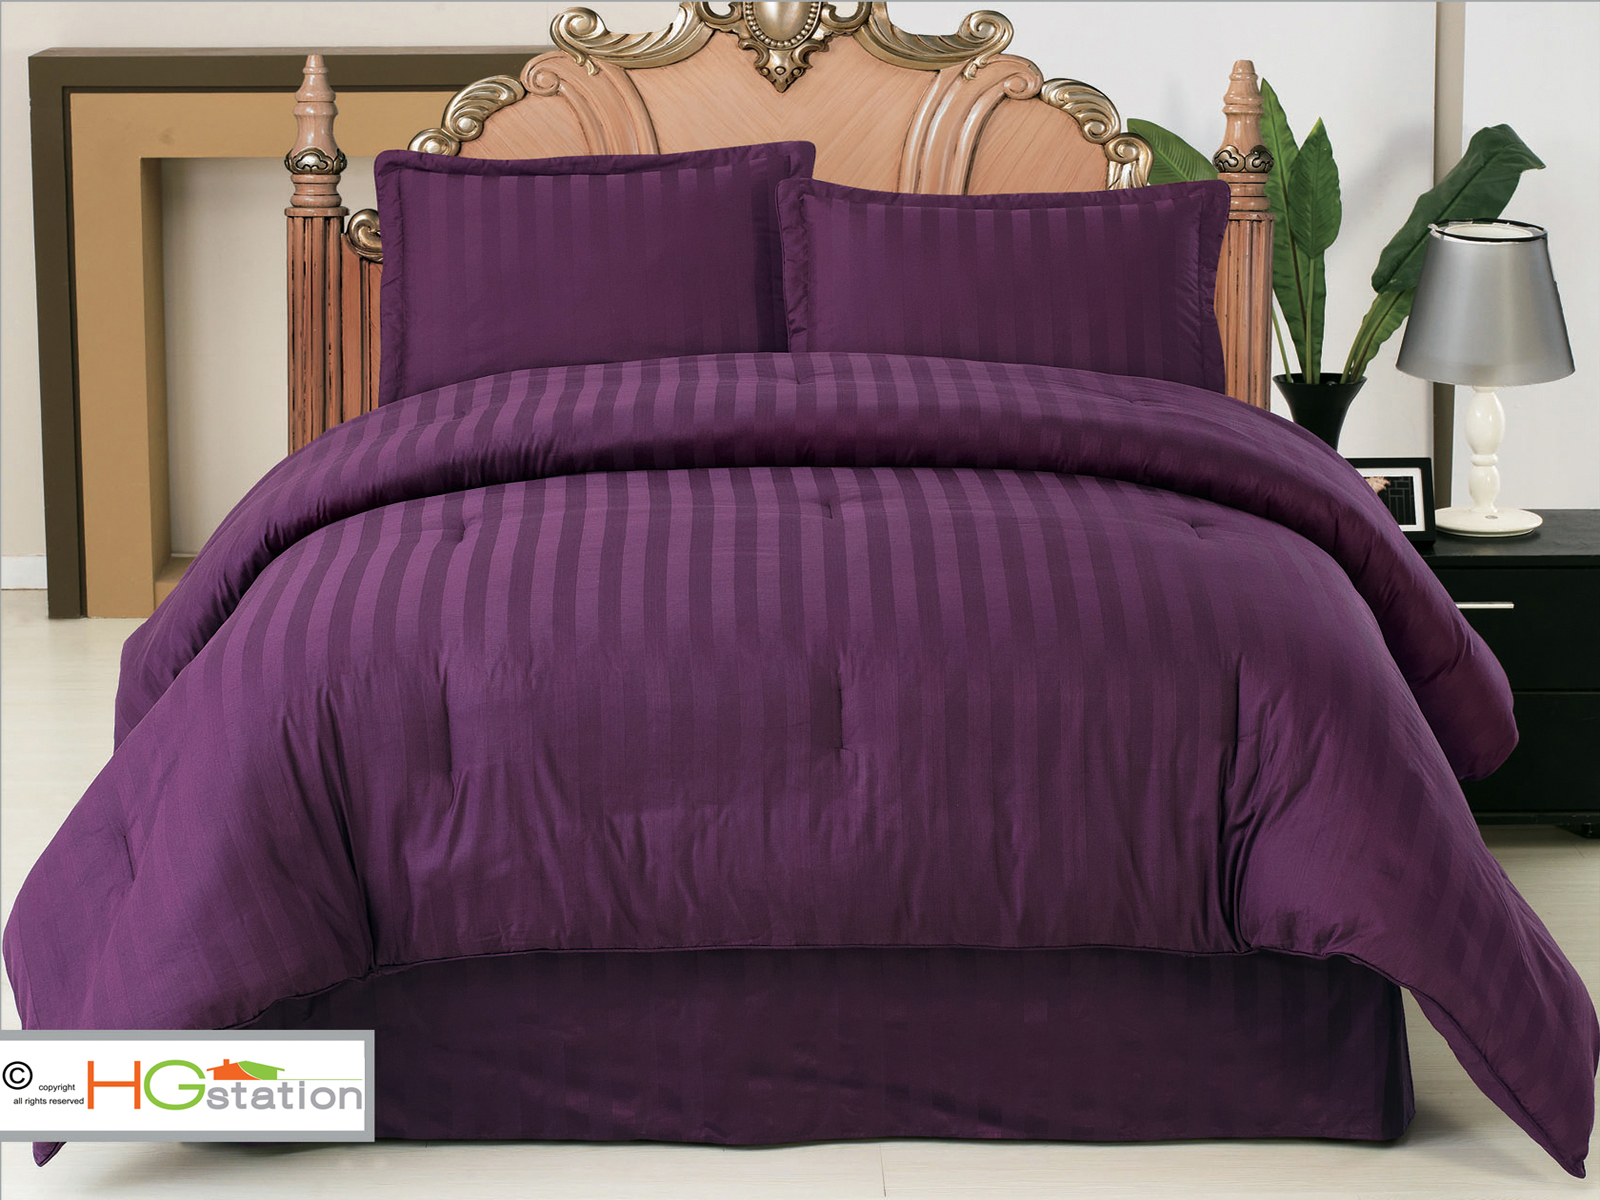 4 pc elegant classic damask stripe comforter set purple